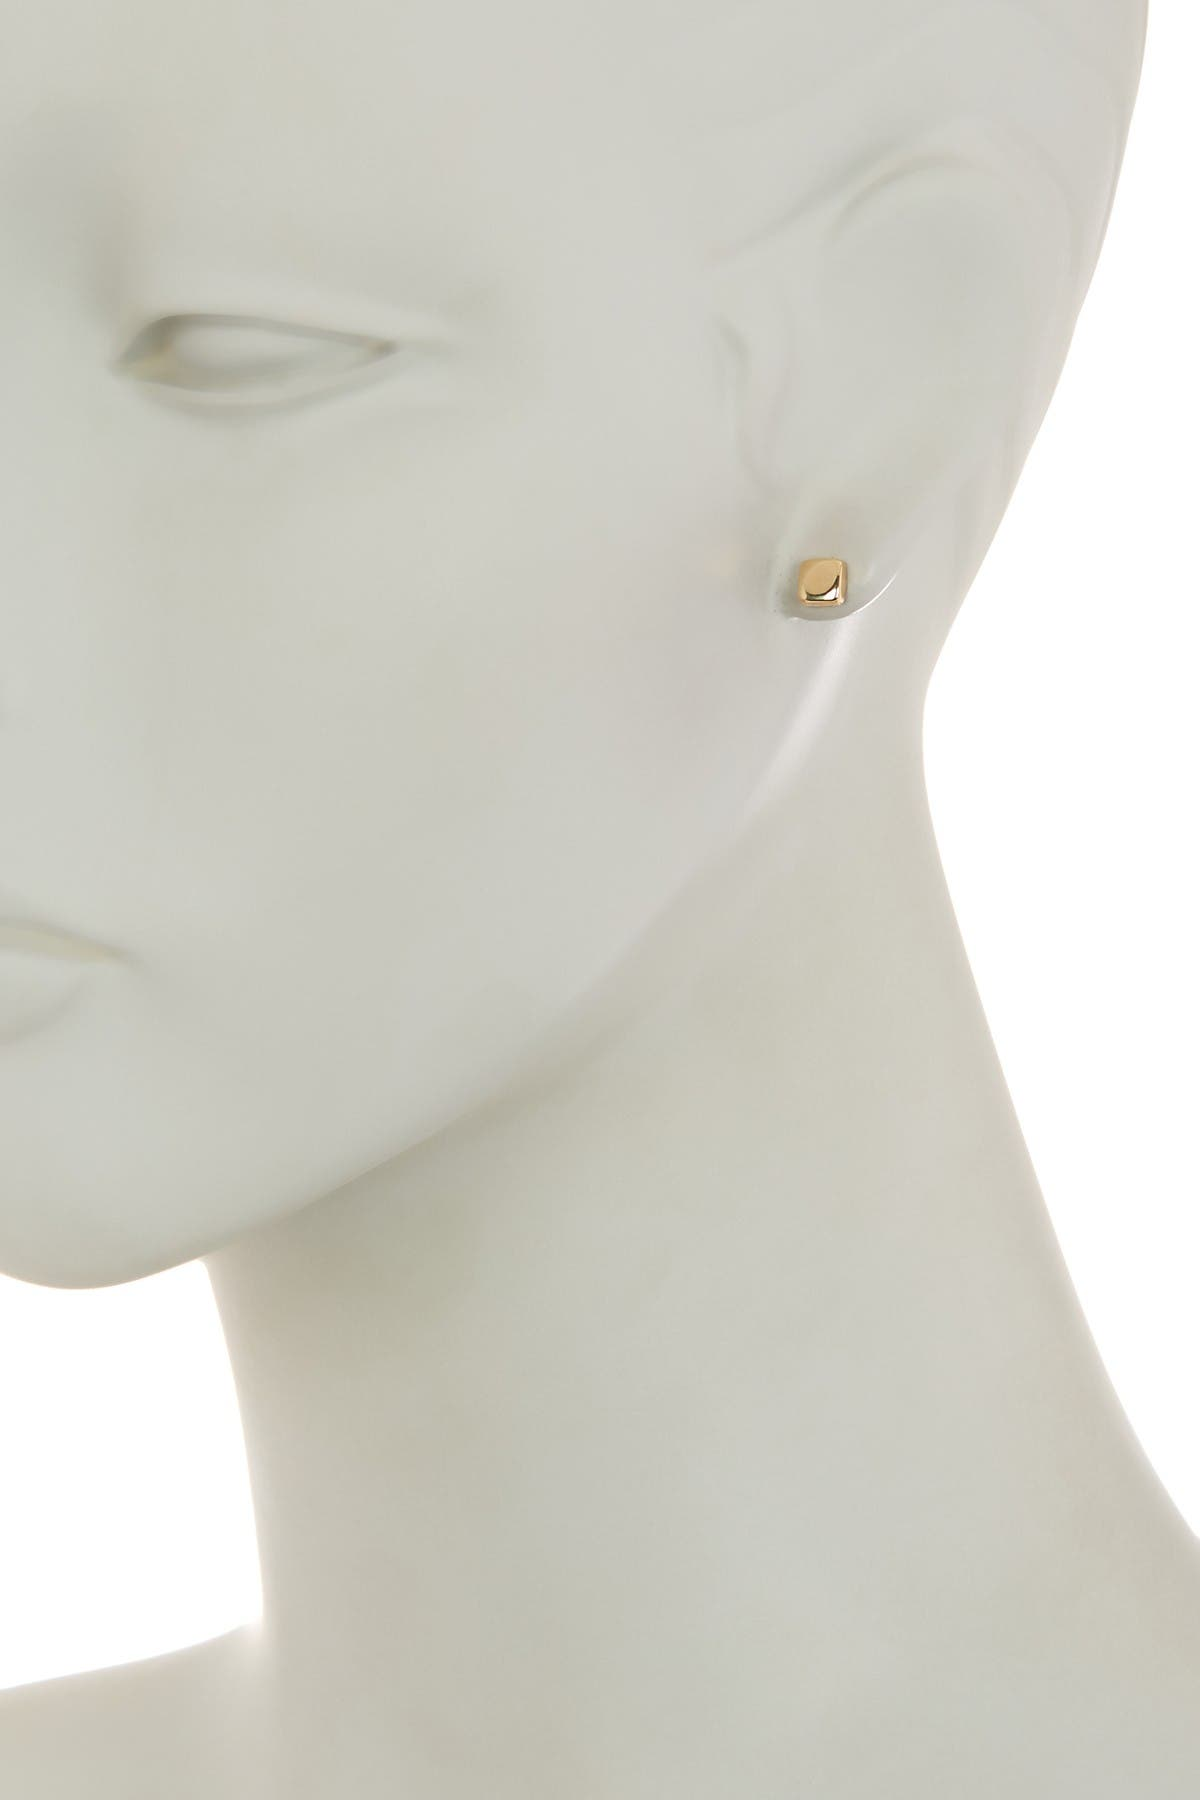 Image of Candela 14K Yellow Gold Cushion Stud Earrings